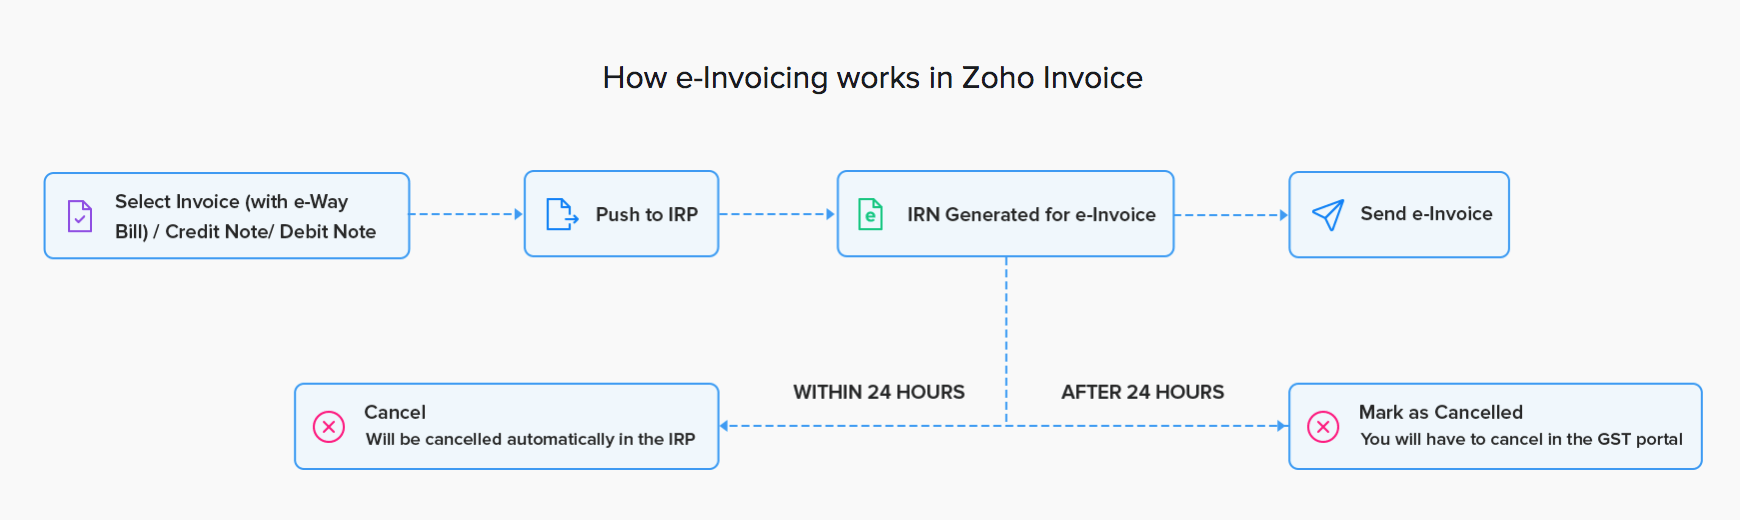 How e-Invoicing works in Zoho Invoice